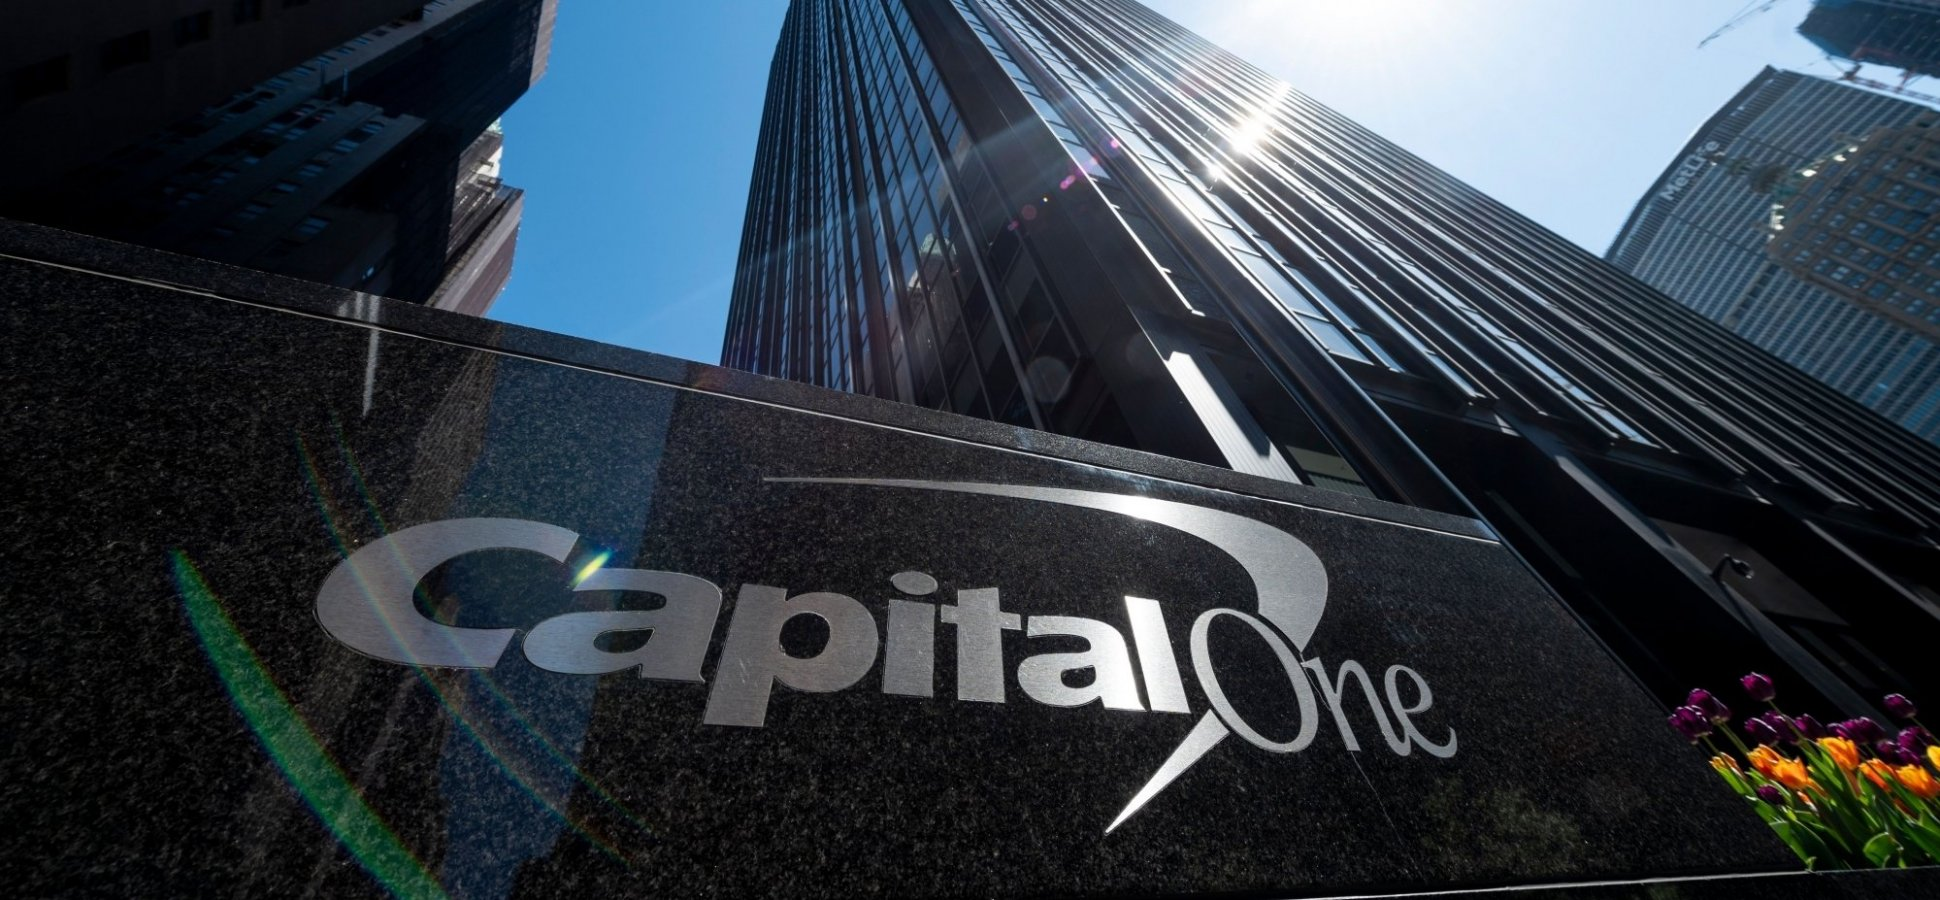 Here's How to Know if Your Personal Information Was Compromised in the Capital One Data Breach